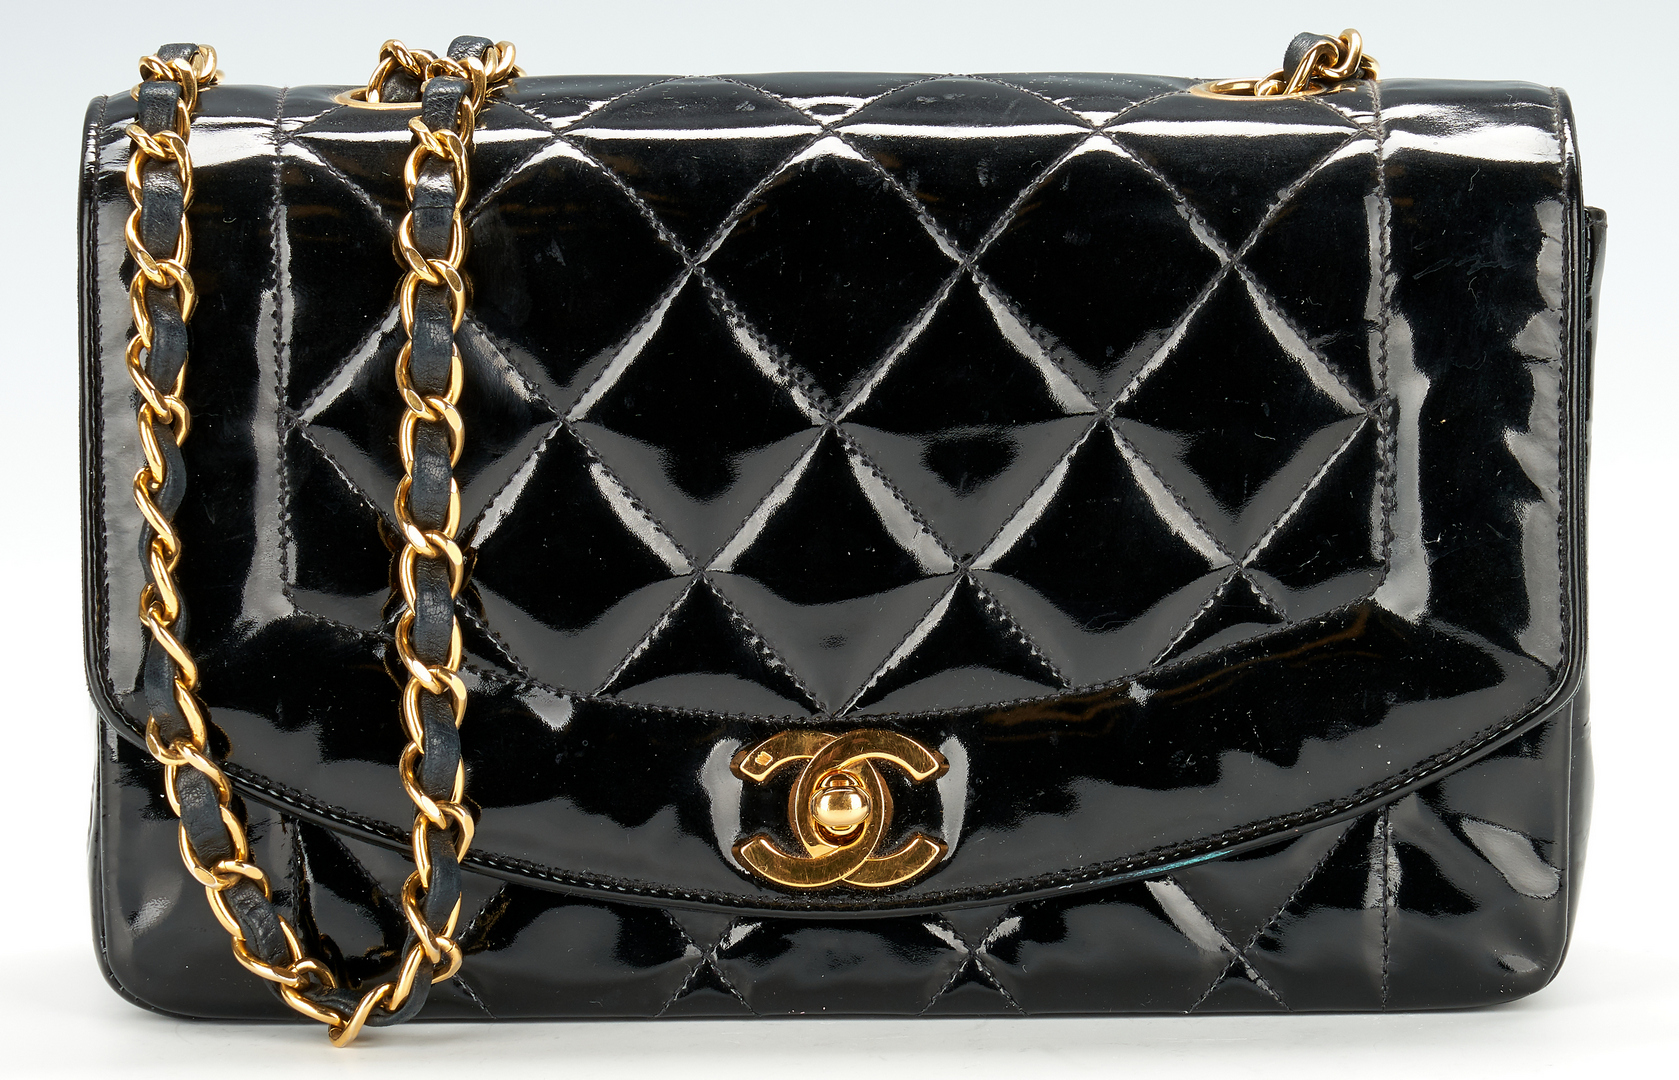 Lot 701: Chanel Diana Quilted Patent Single Flap Bag, Small